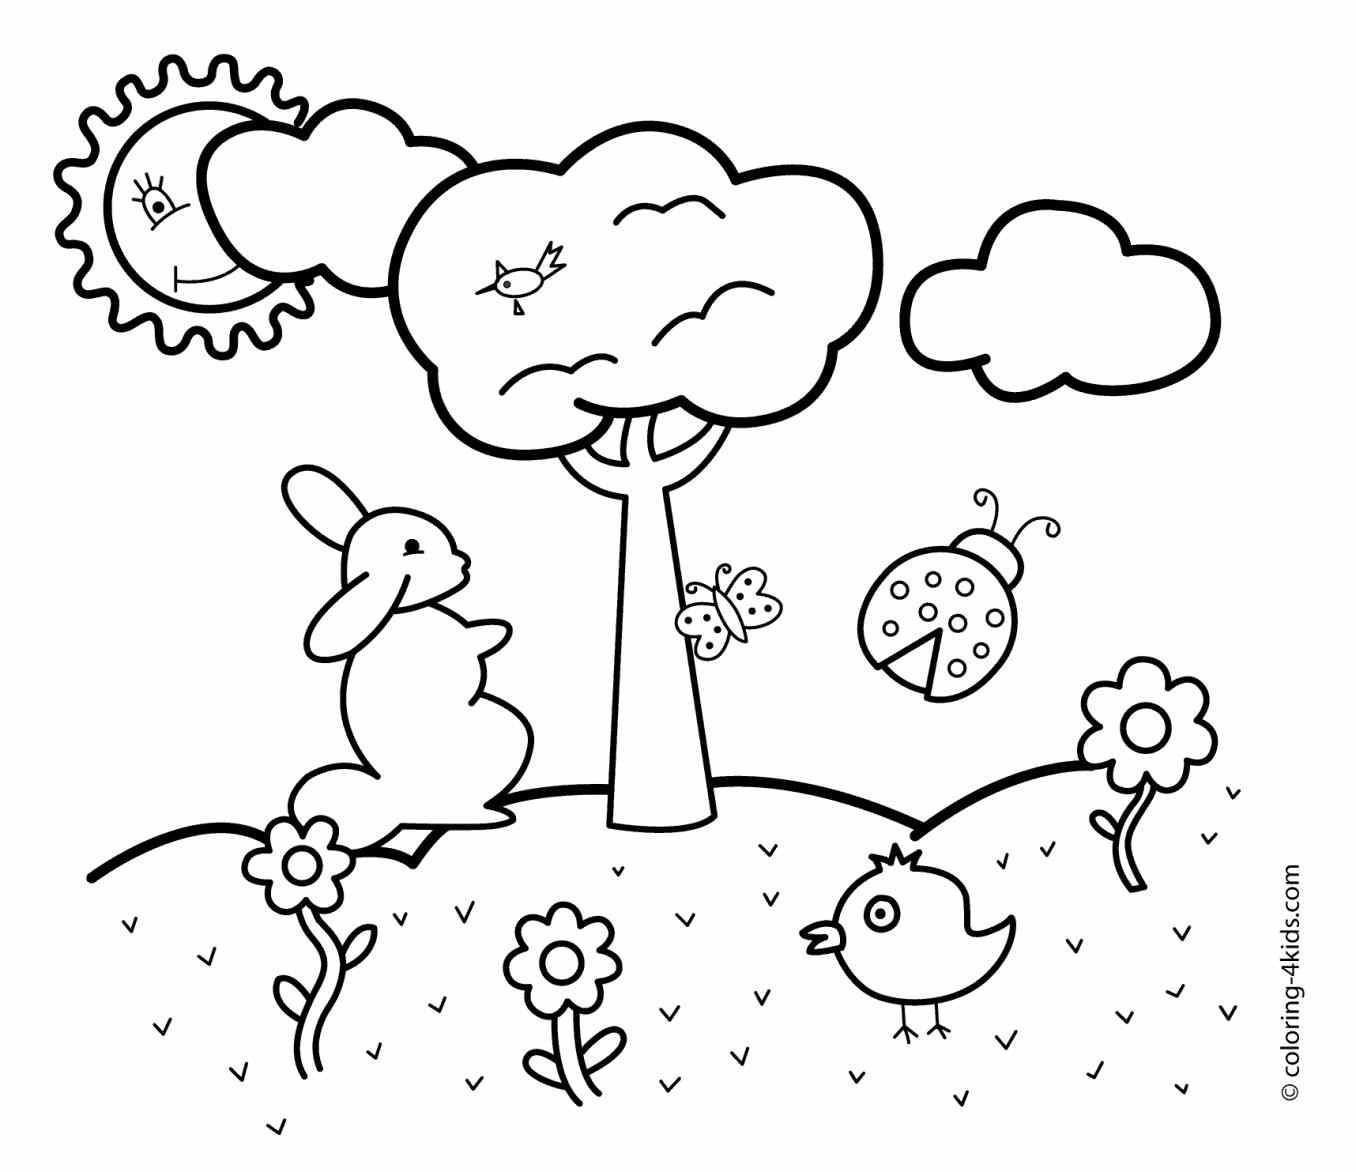 1356x1172 Simple Nature Coloring Pages New Easy Landscape Drawings Step By